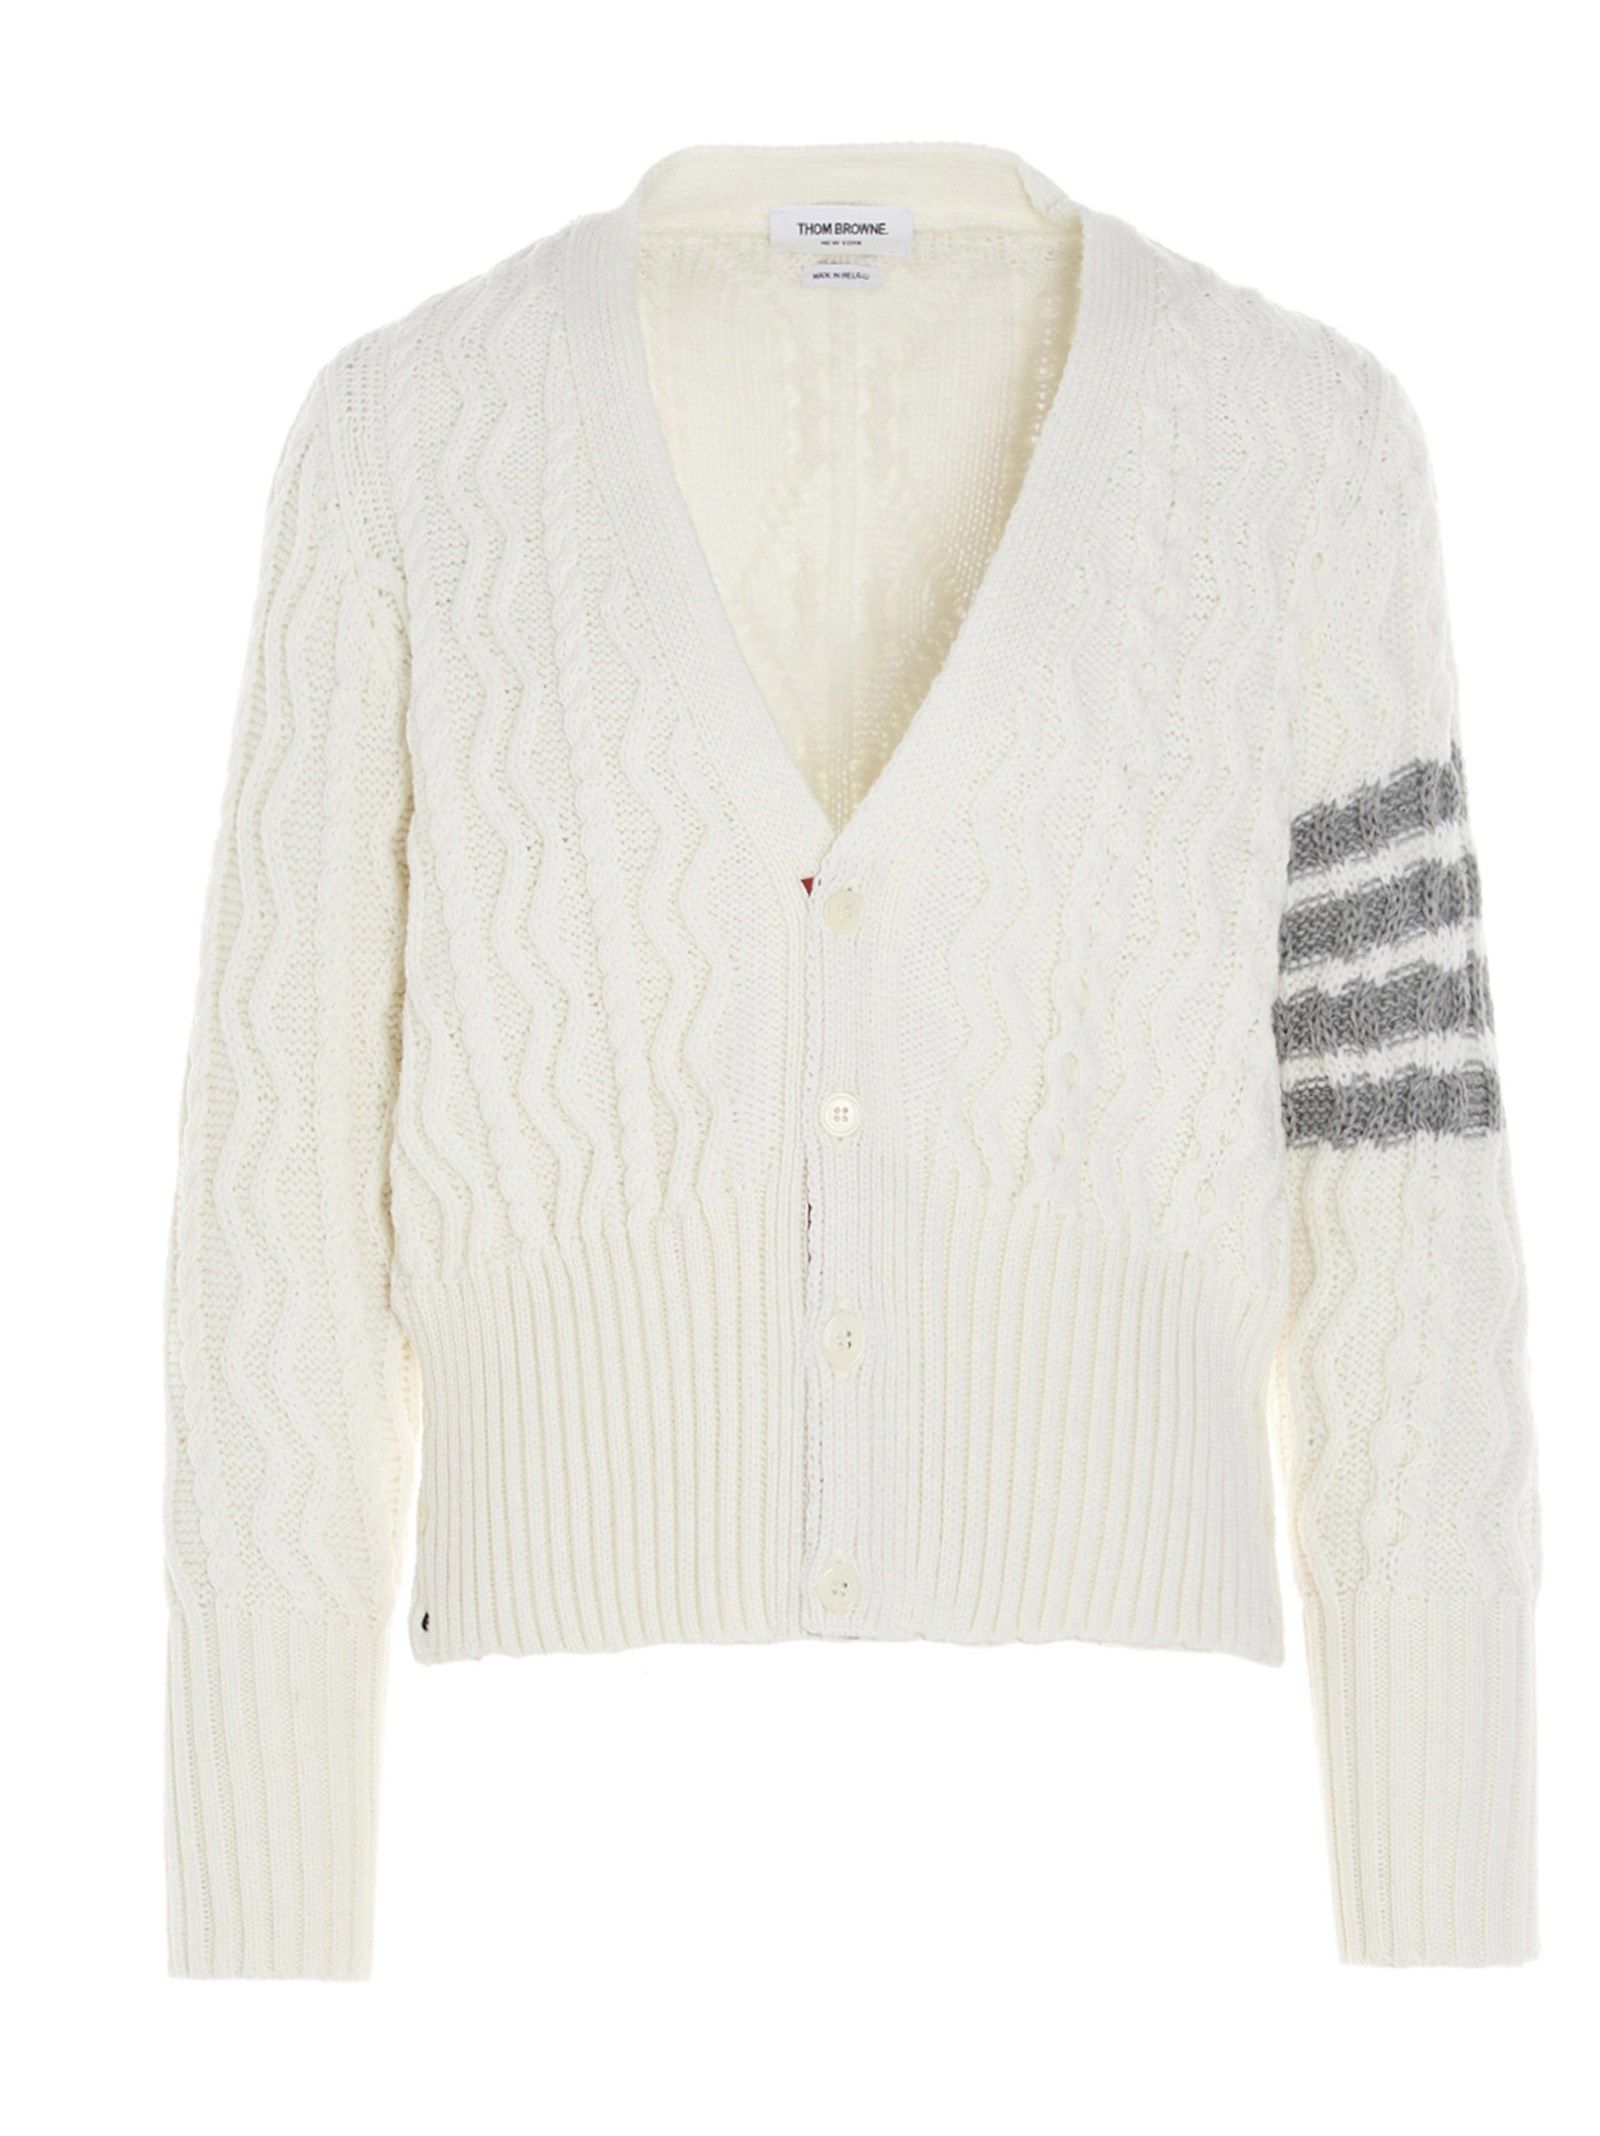 Thom Browne THOM BROWNE MEN'S WHITE WOOL CARDIGAN